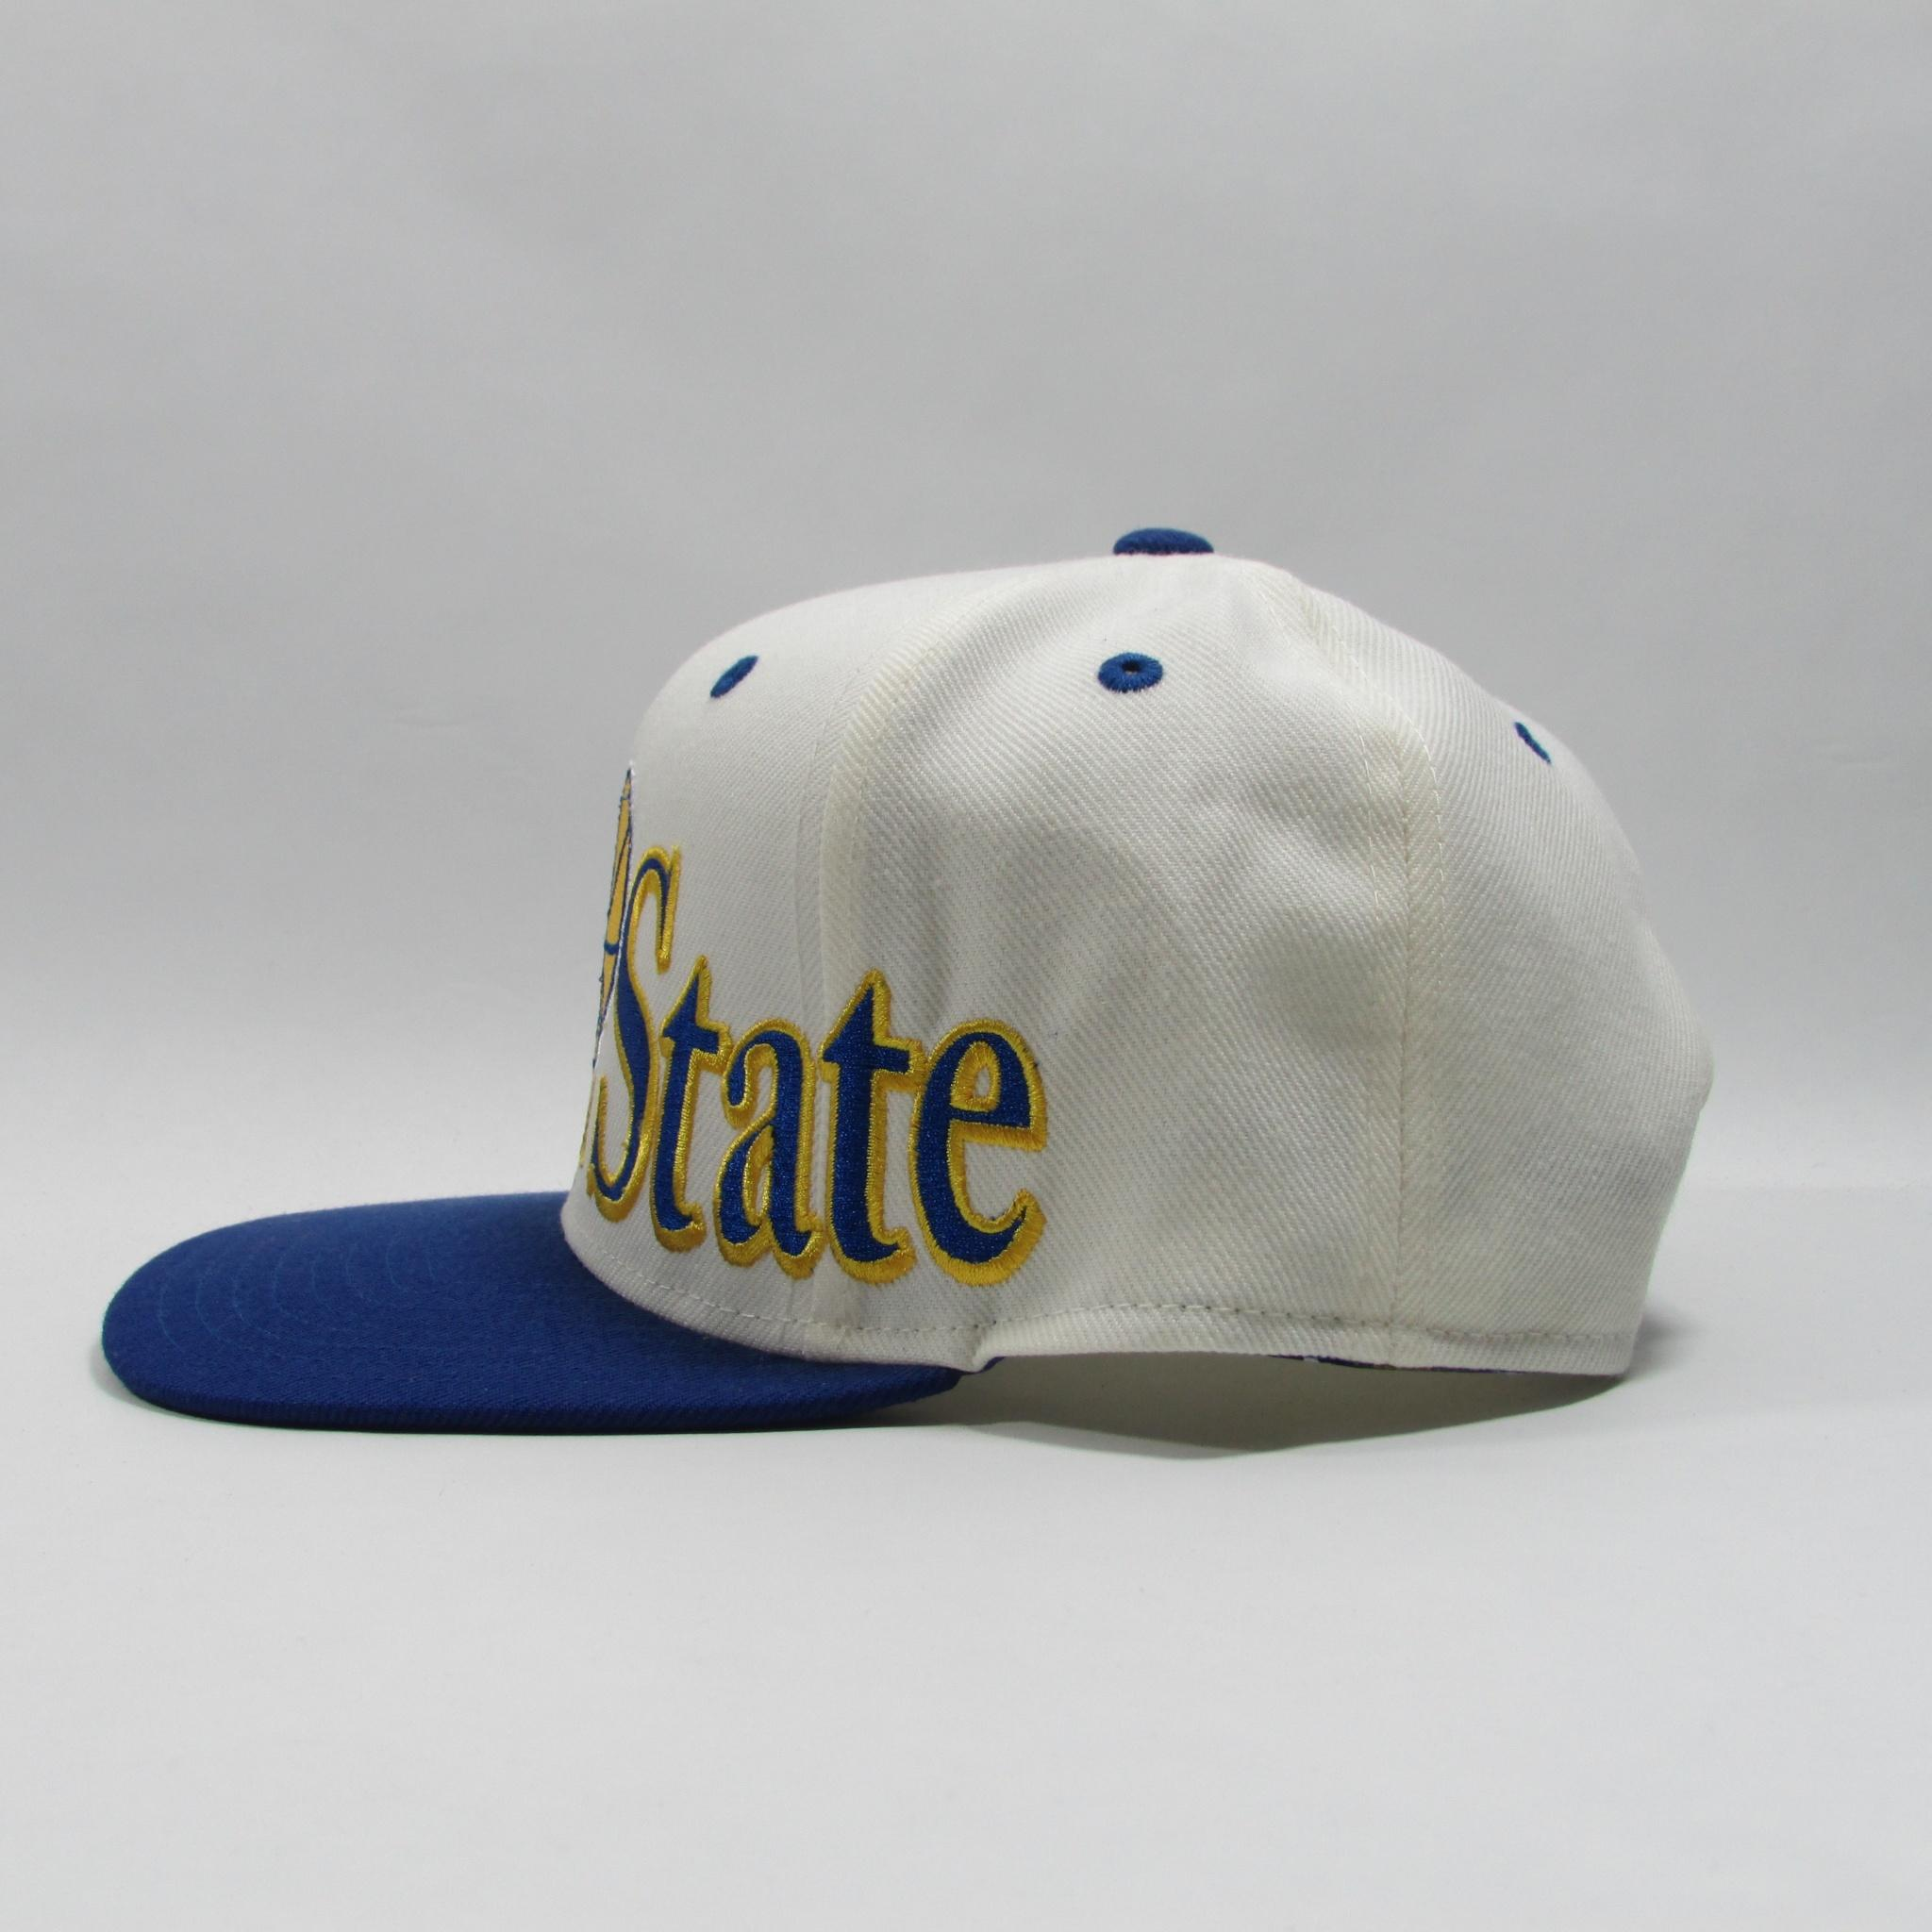 Golden State Warriors Basketball Snapback Hat XL 3d Logo Adidas